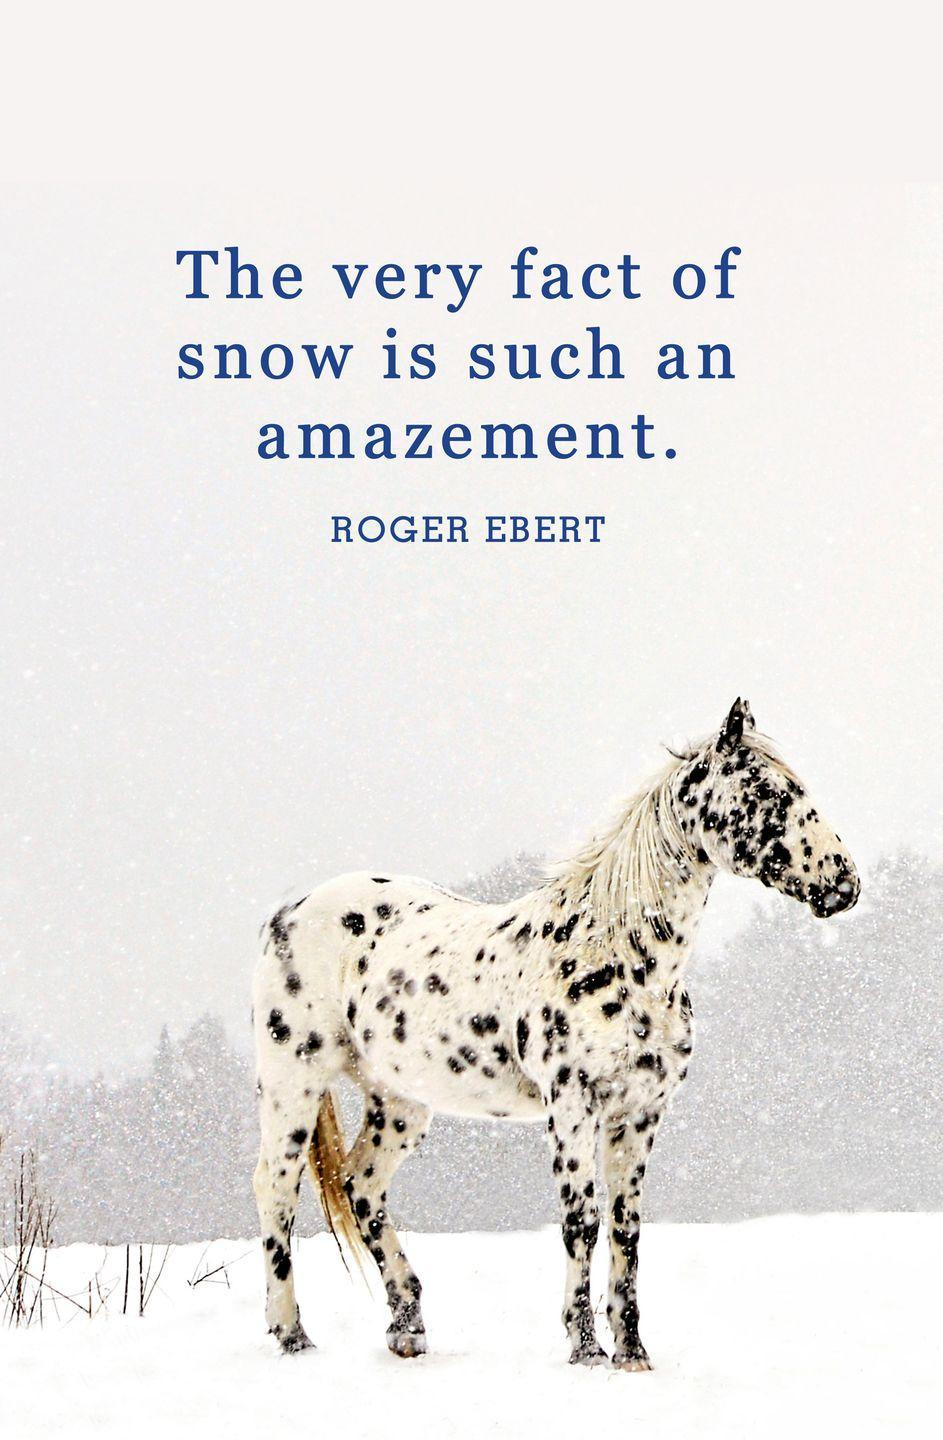 "<p>""The very fact of snow is such an amazement.""</p>"